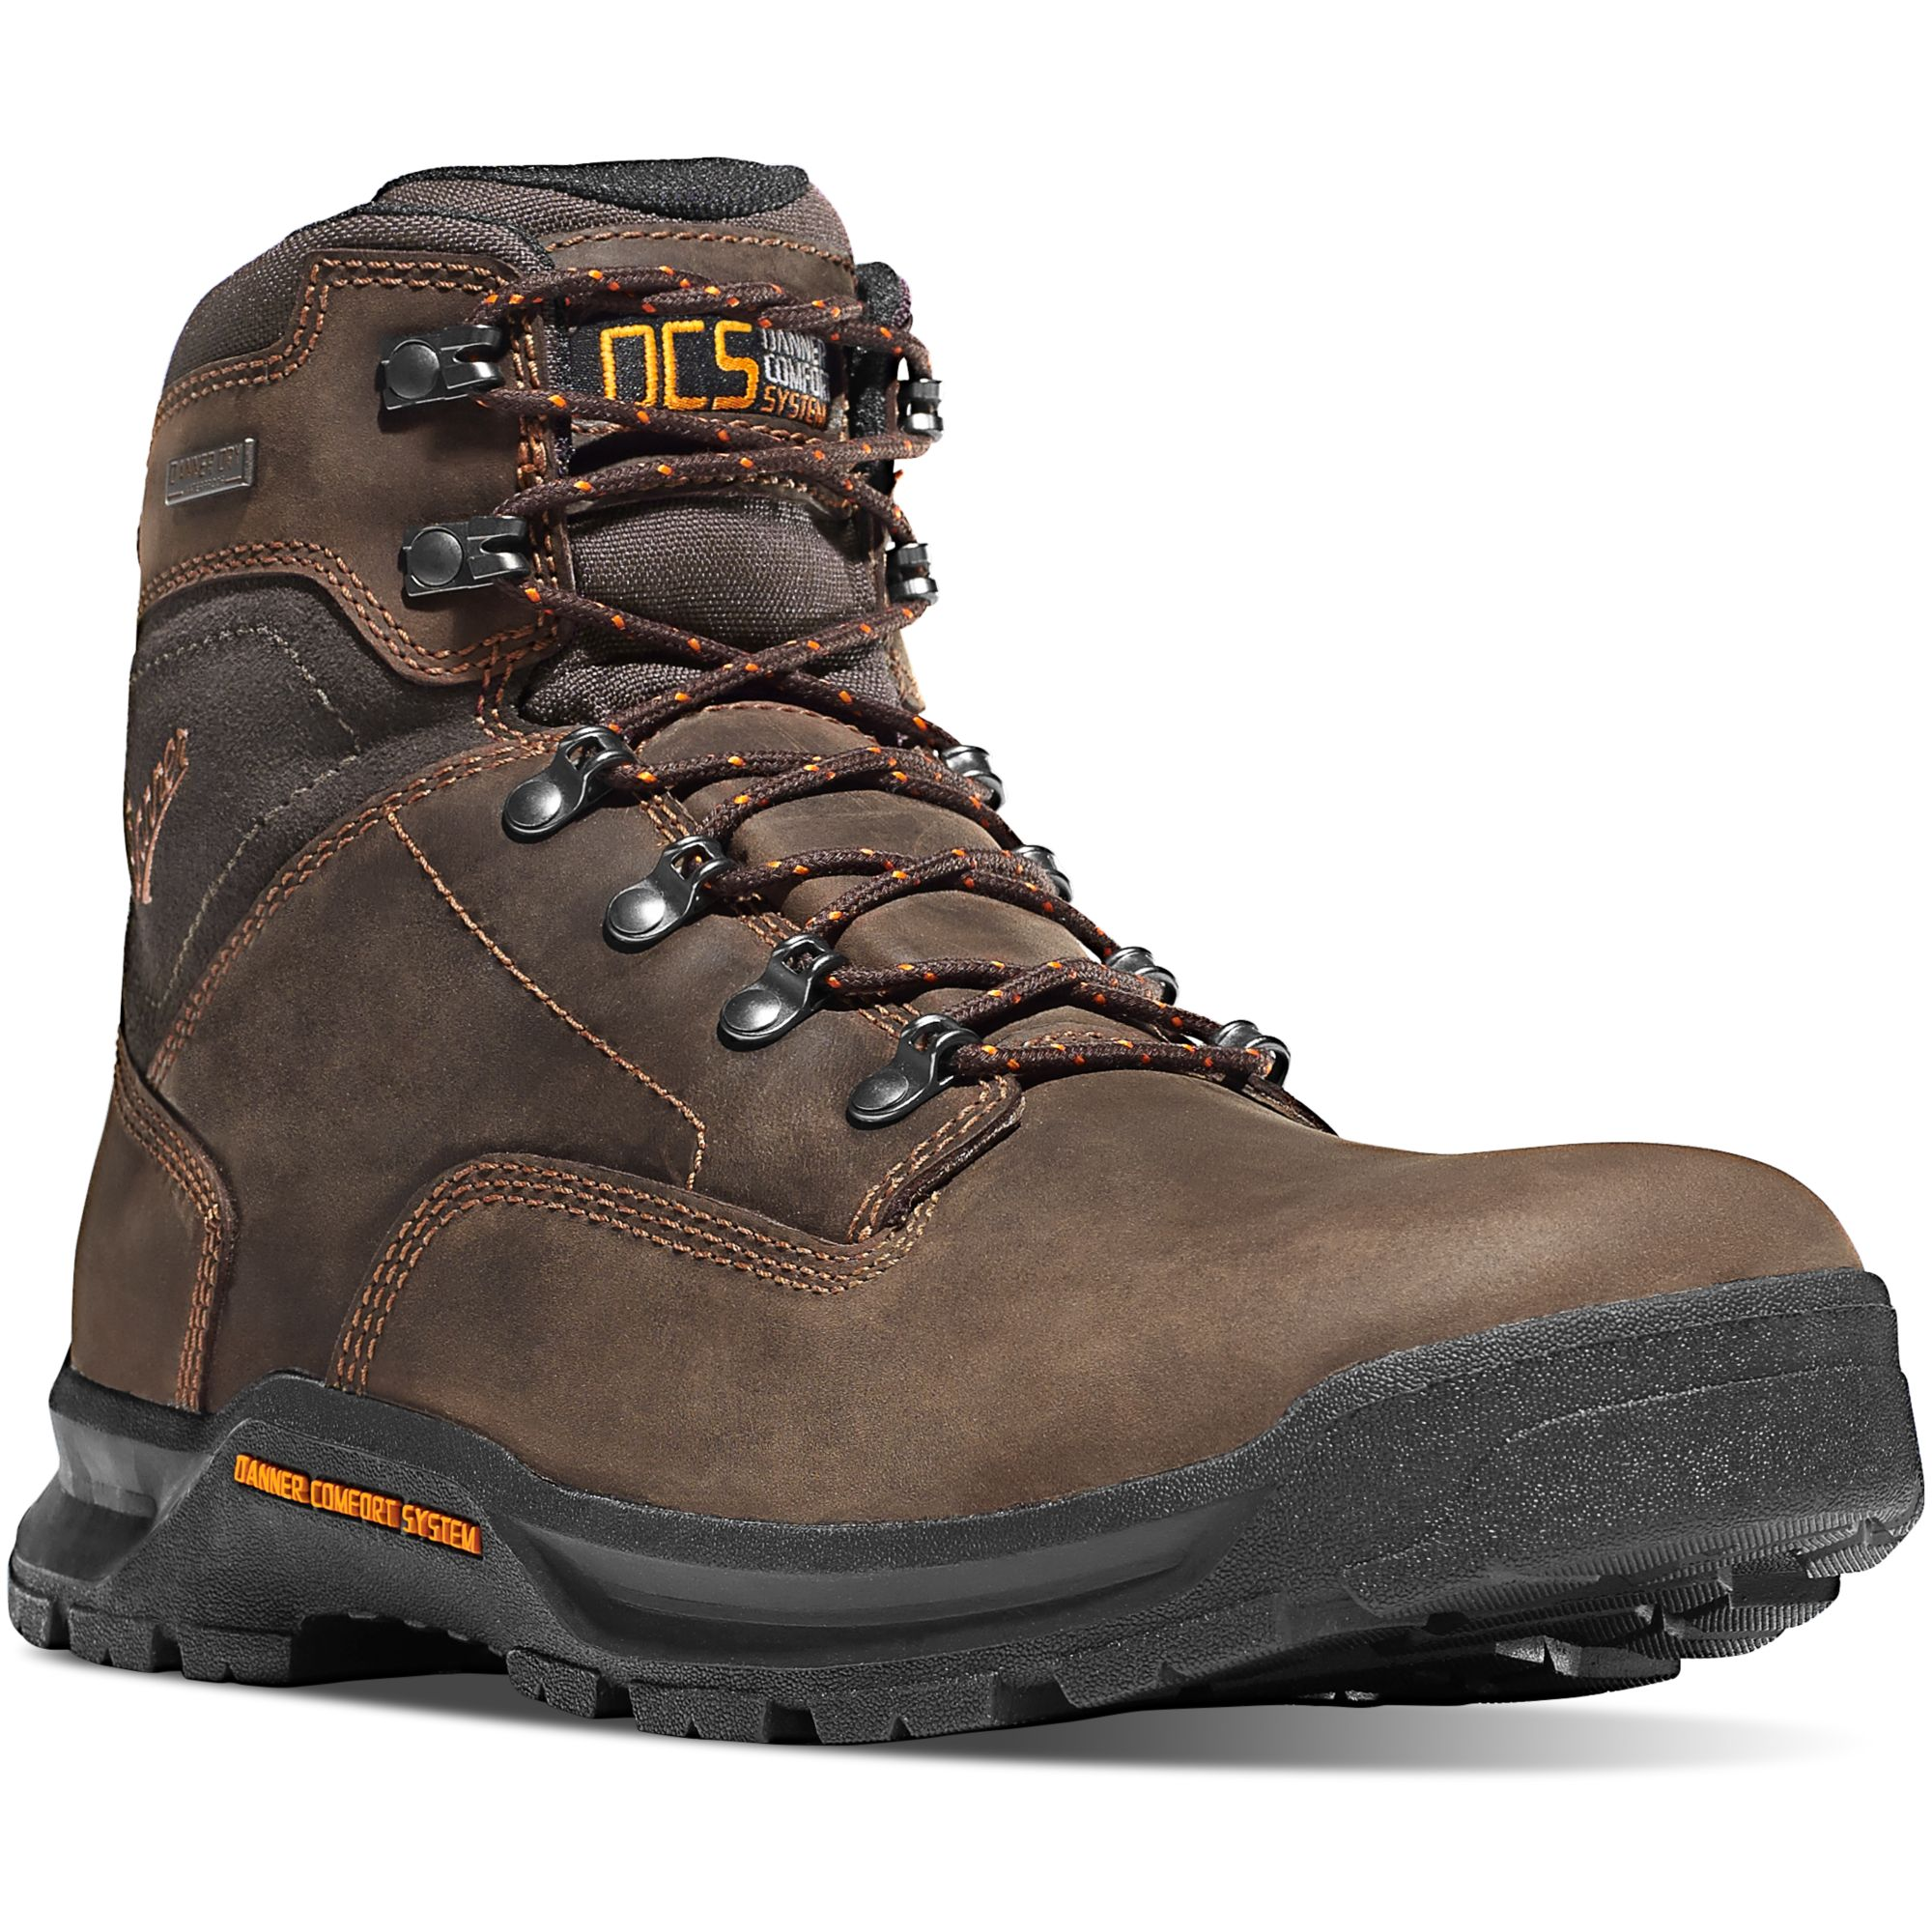 3f3d9983834 Danner Crafter Boots